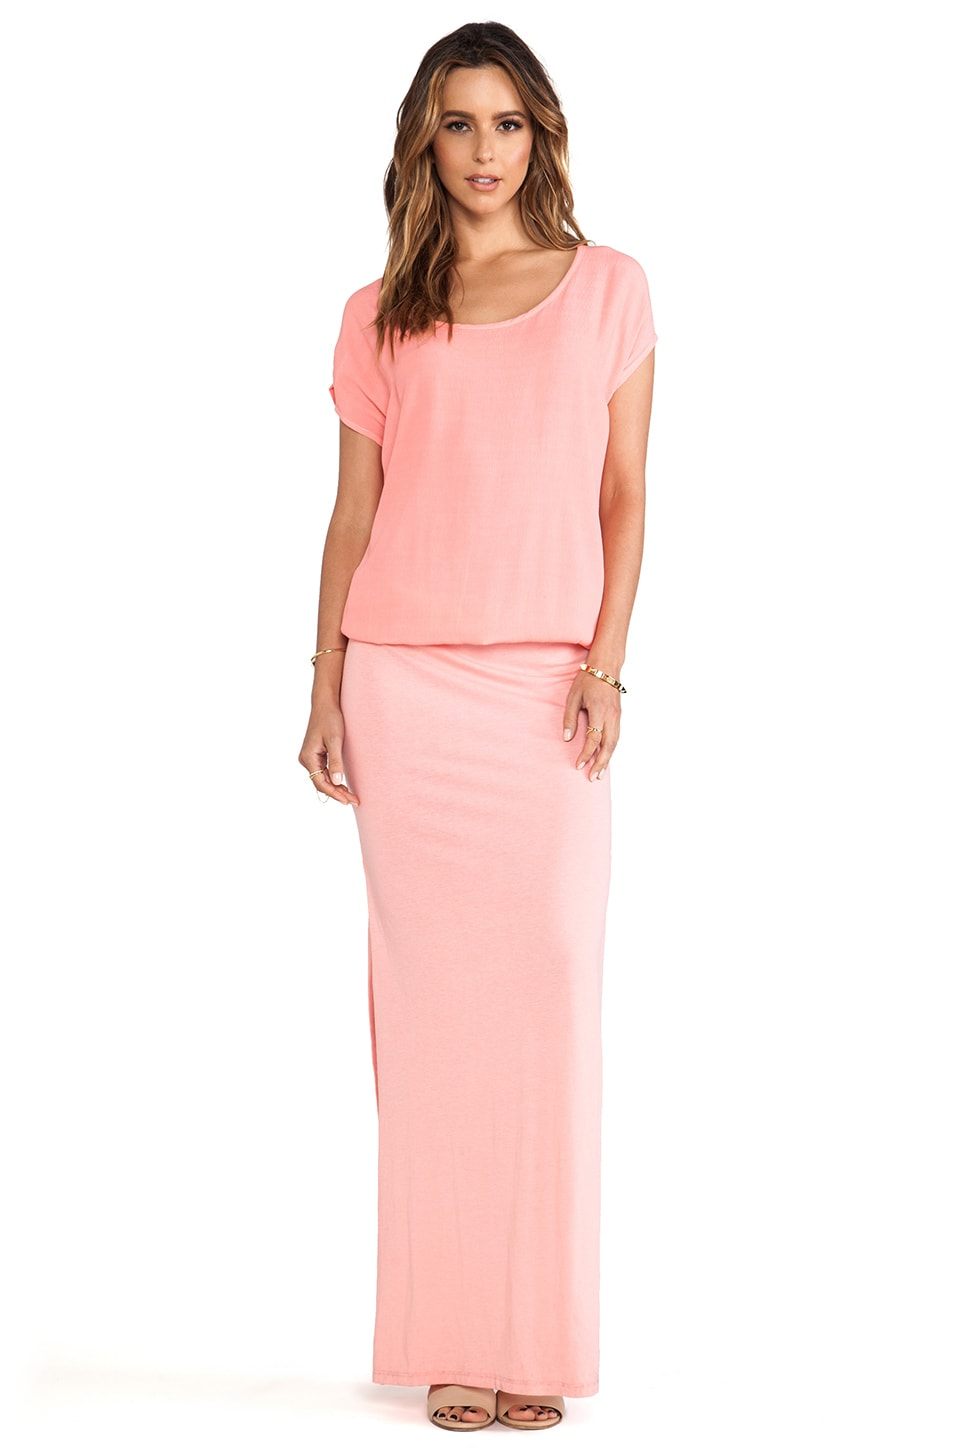 MONROW Crepe Woven Maxi Dress in Light Coral